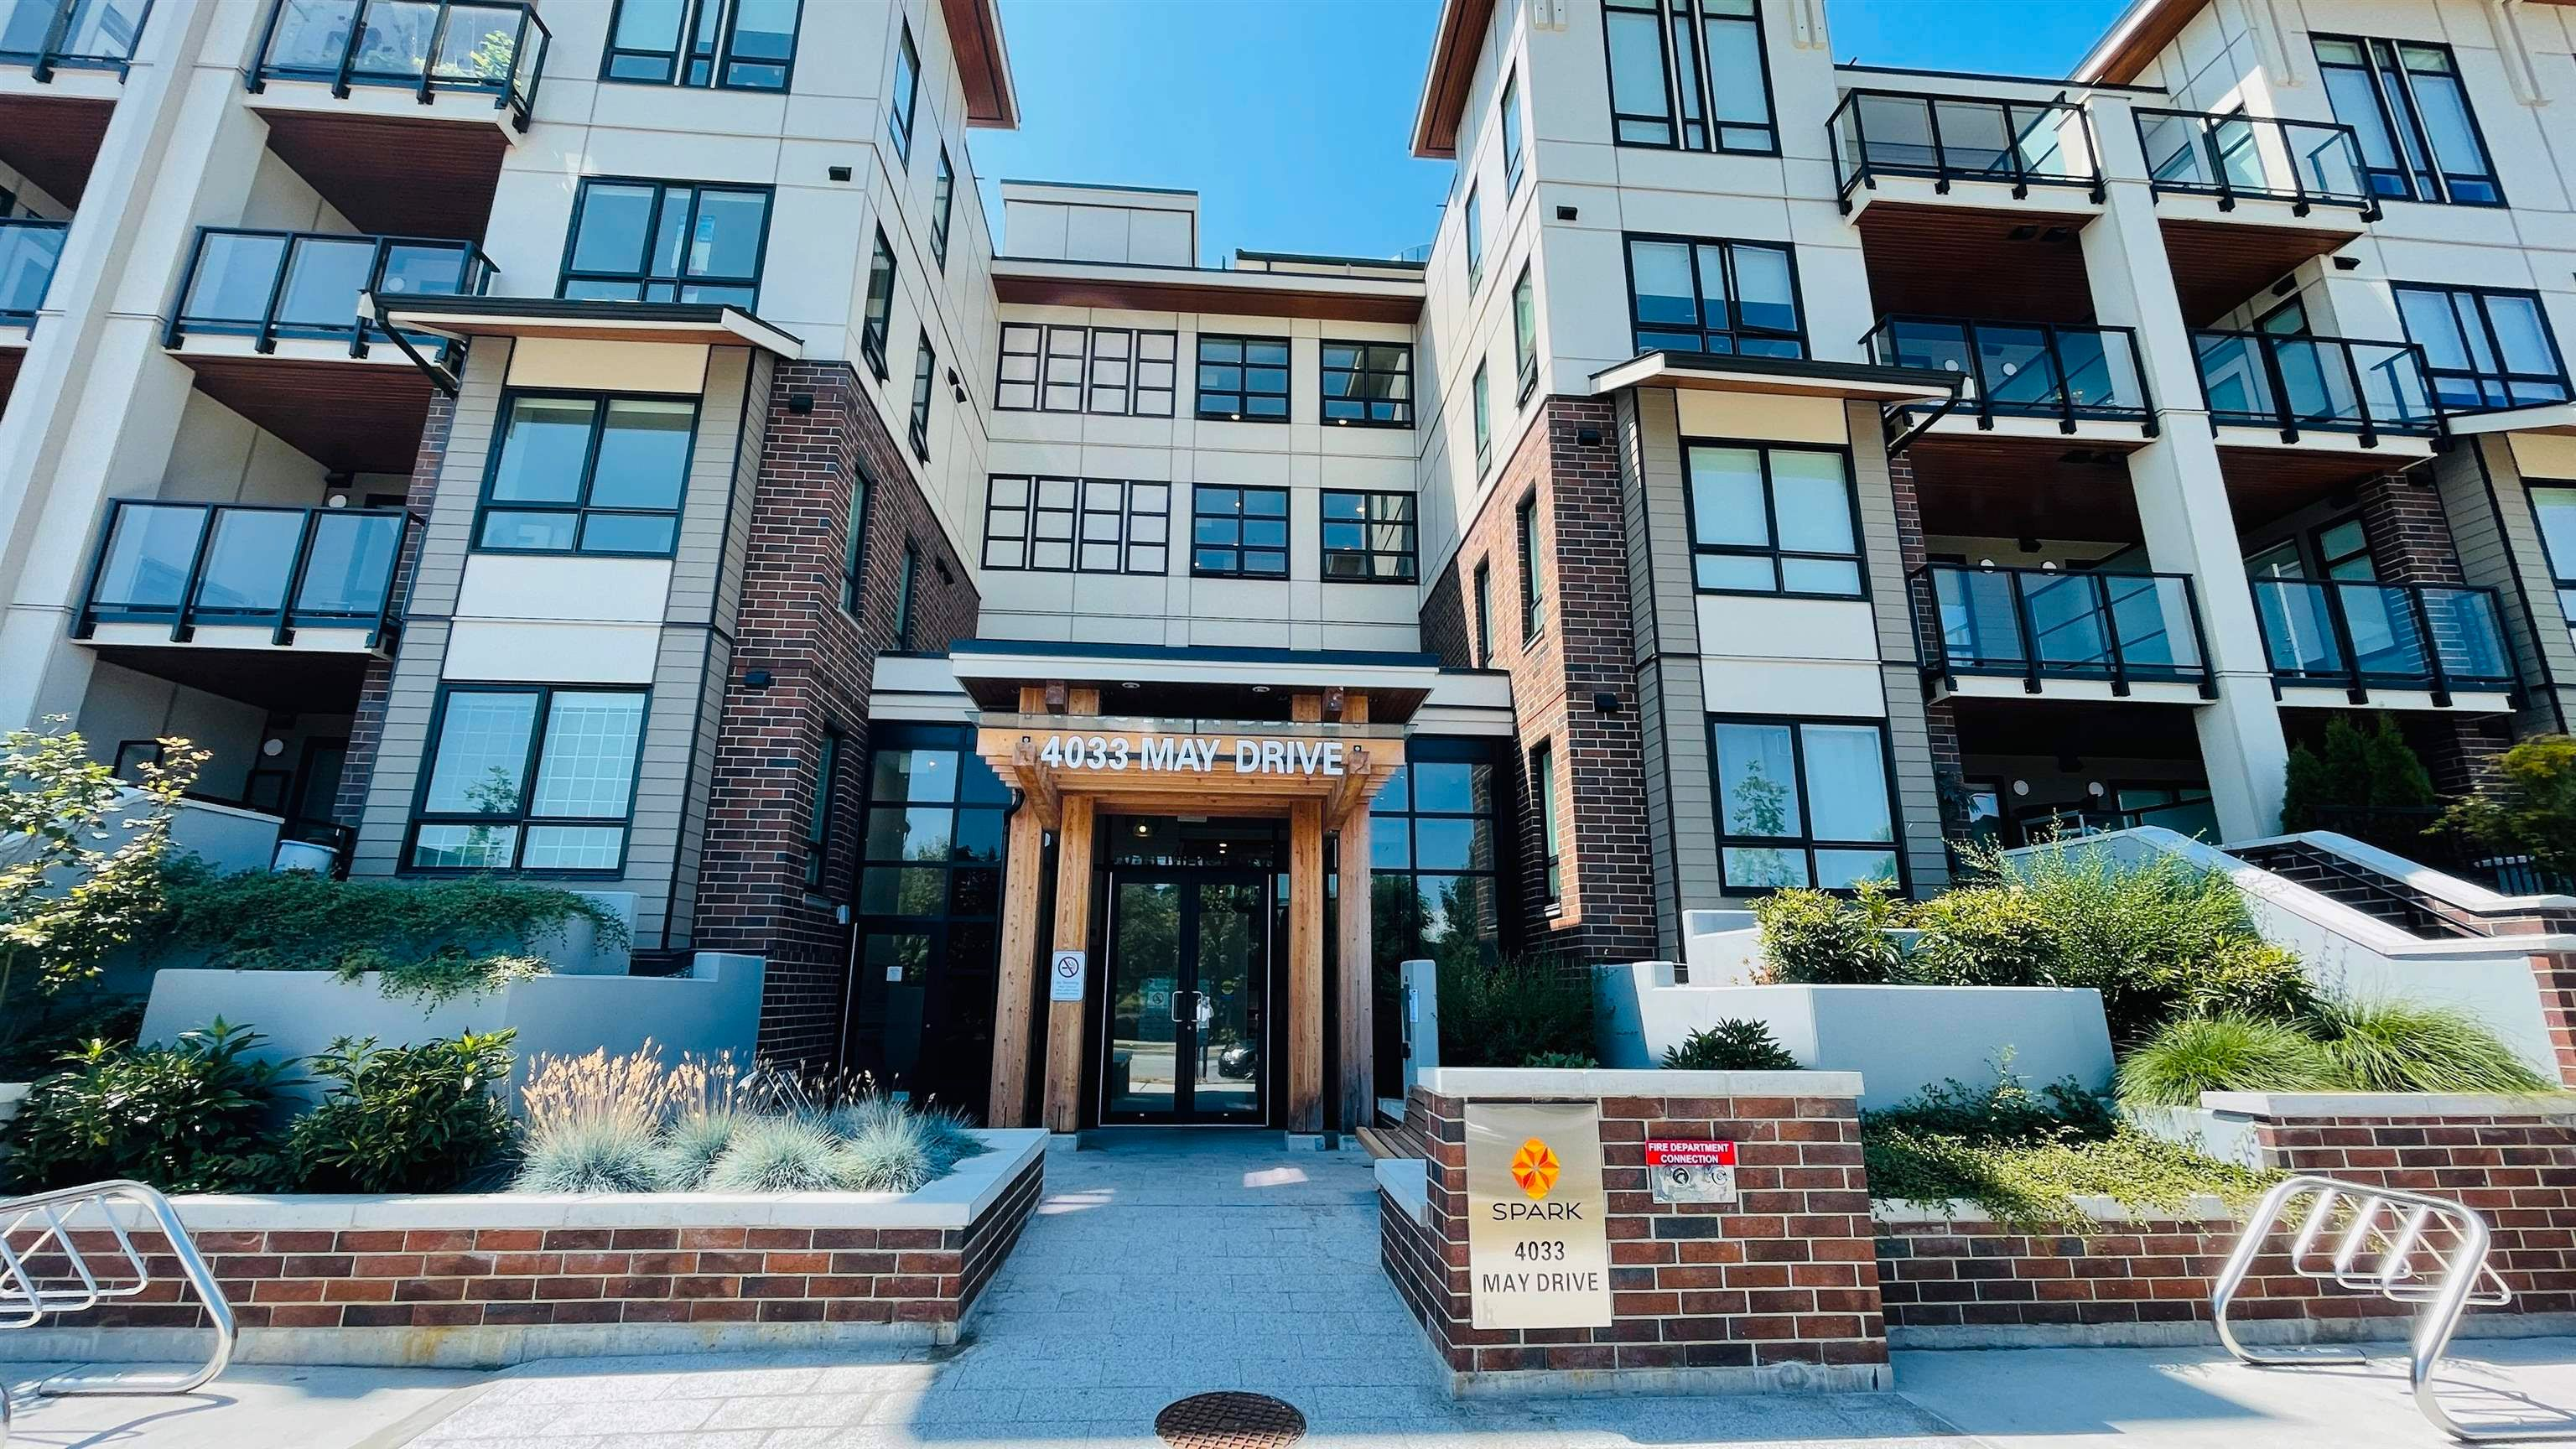 """Main Photo: 309 4033 MAY Drive in Richmond: West Cambie Condo for sale in """"Spark"""" : MLS®# R2608927"""